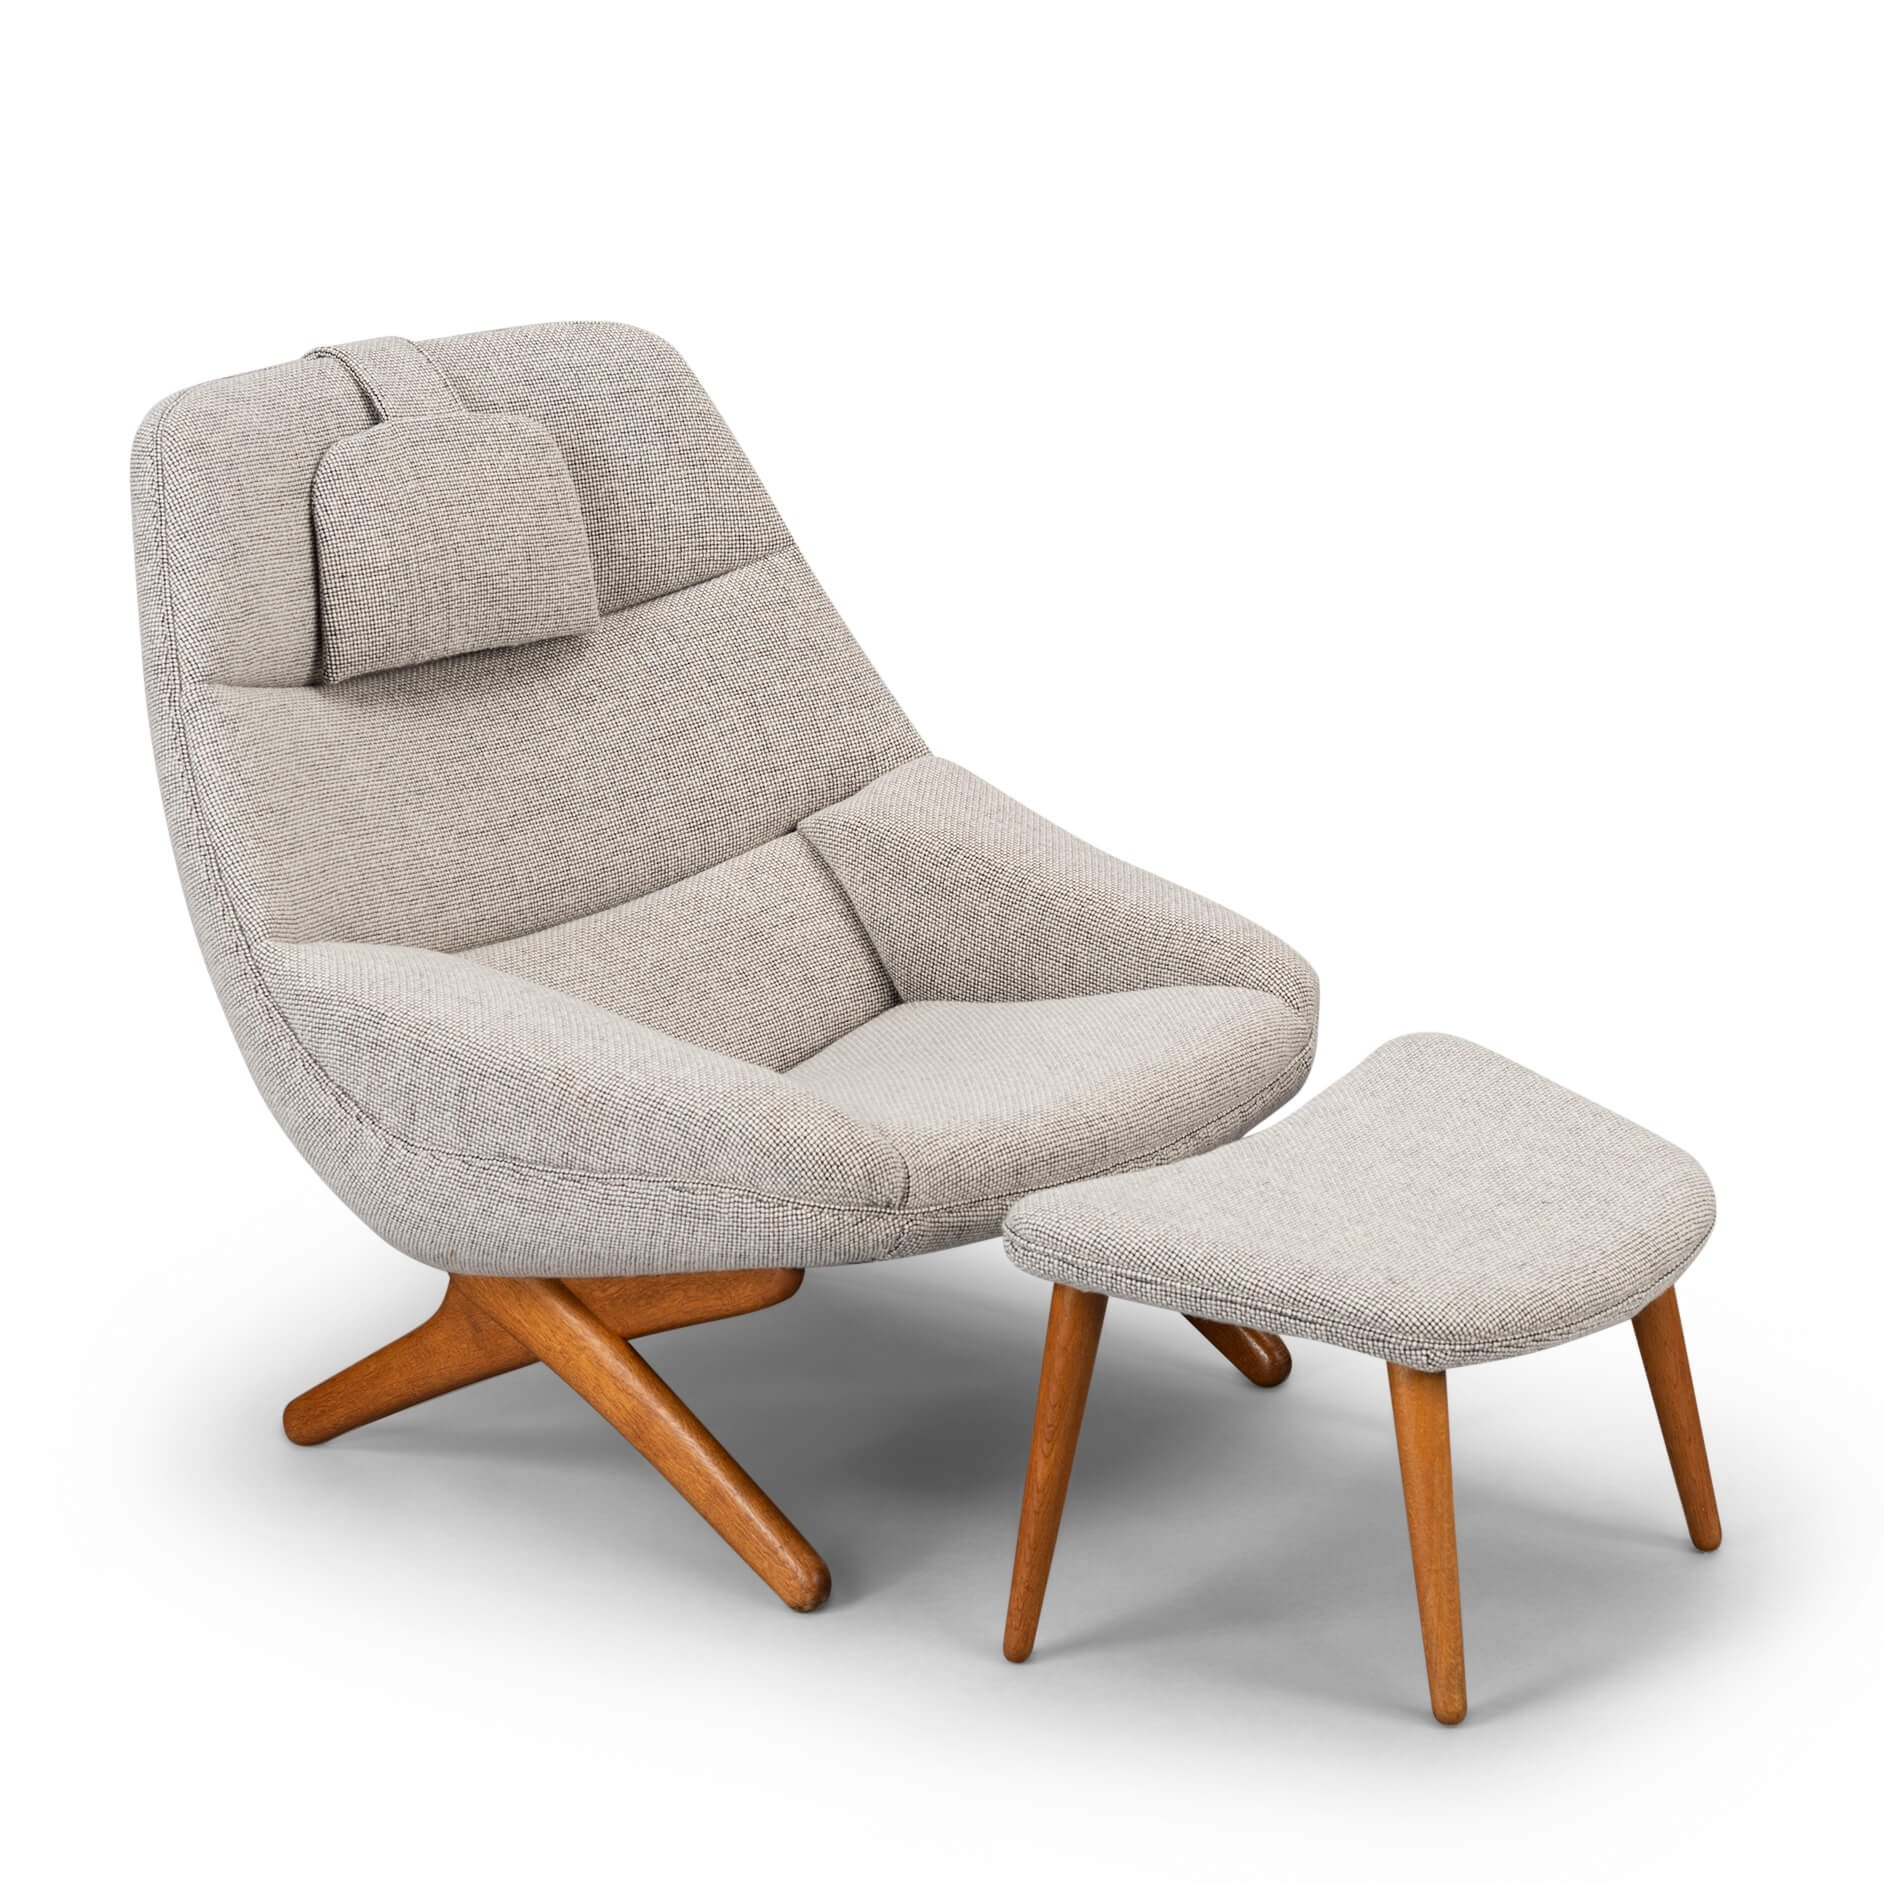 Light Grey Ml 91 Lounge Chair With Ottoman By Illum Wikkelso 1960s 125918